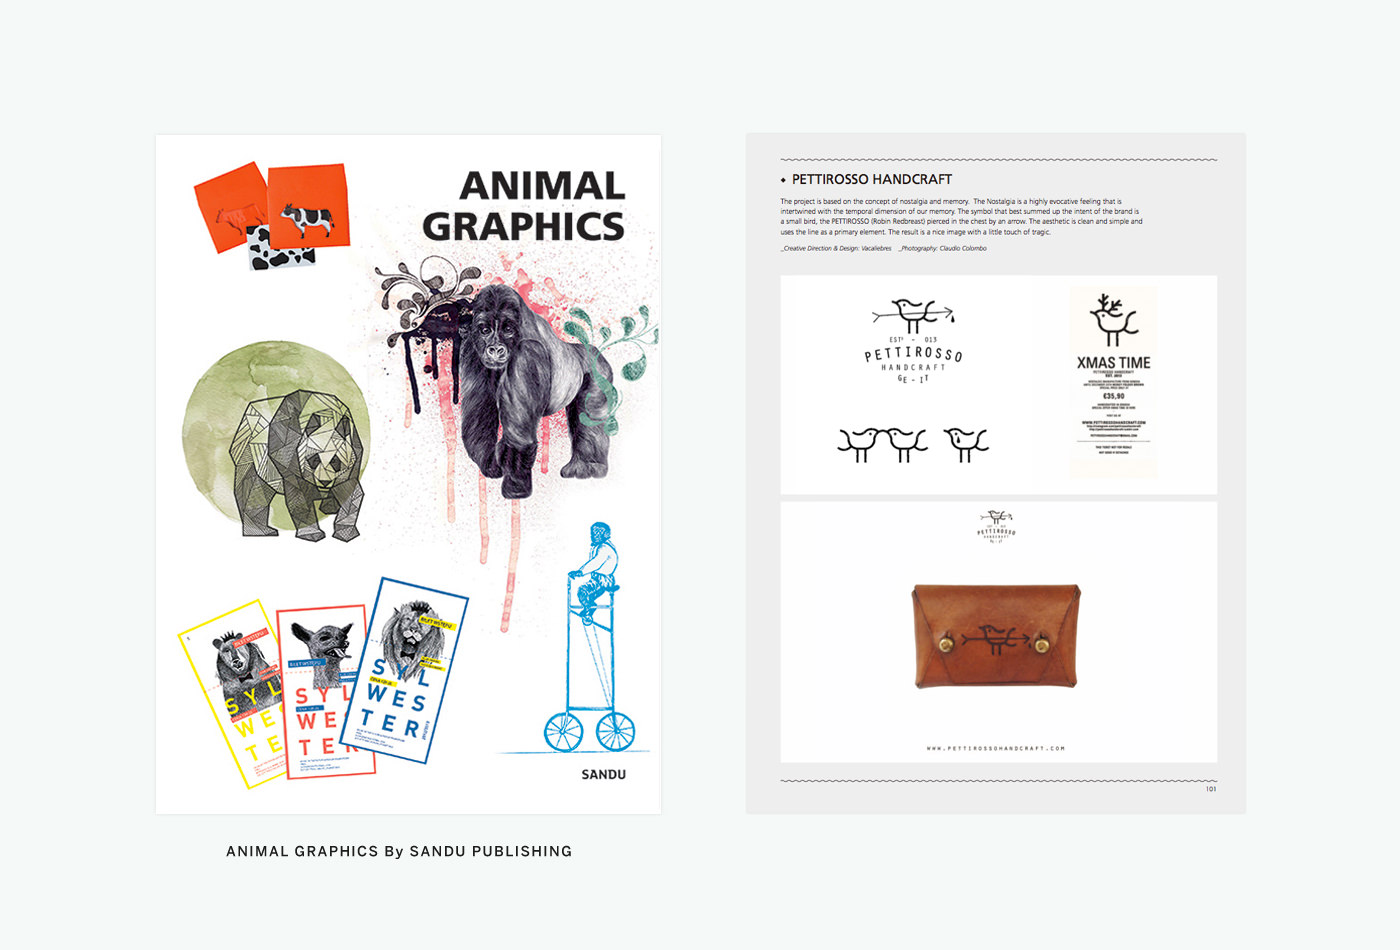 about-vacaliebres-book-animal-graphics-sandu-sandupublishing-animalgraphics